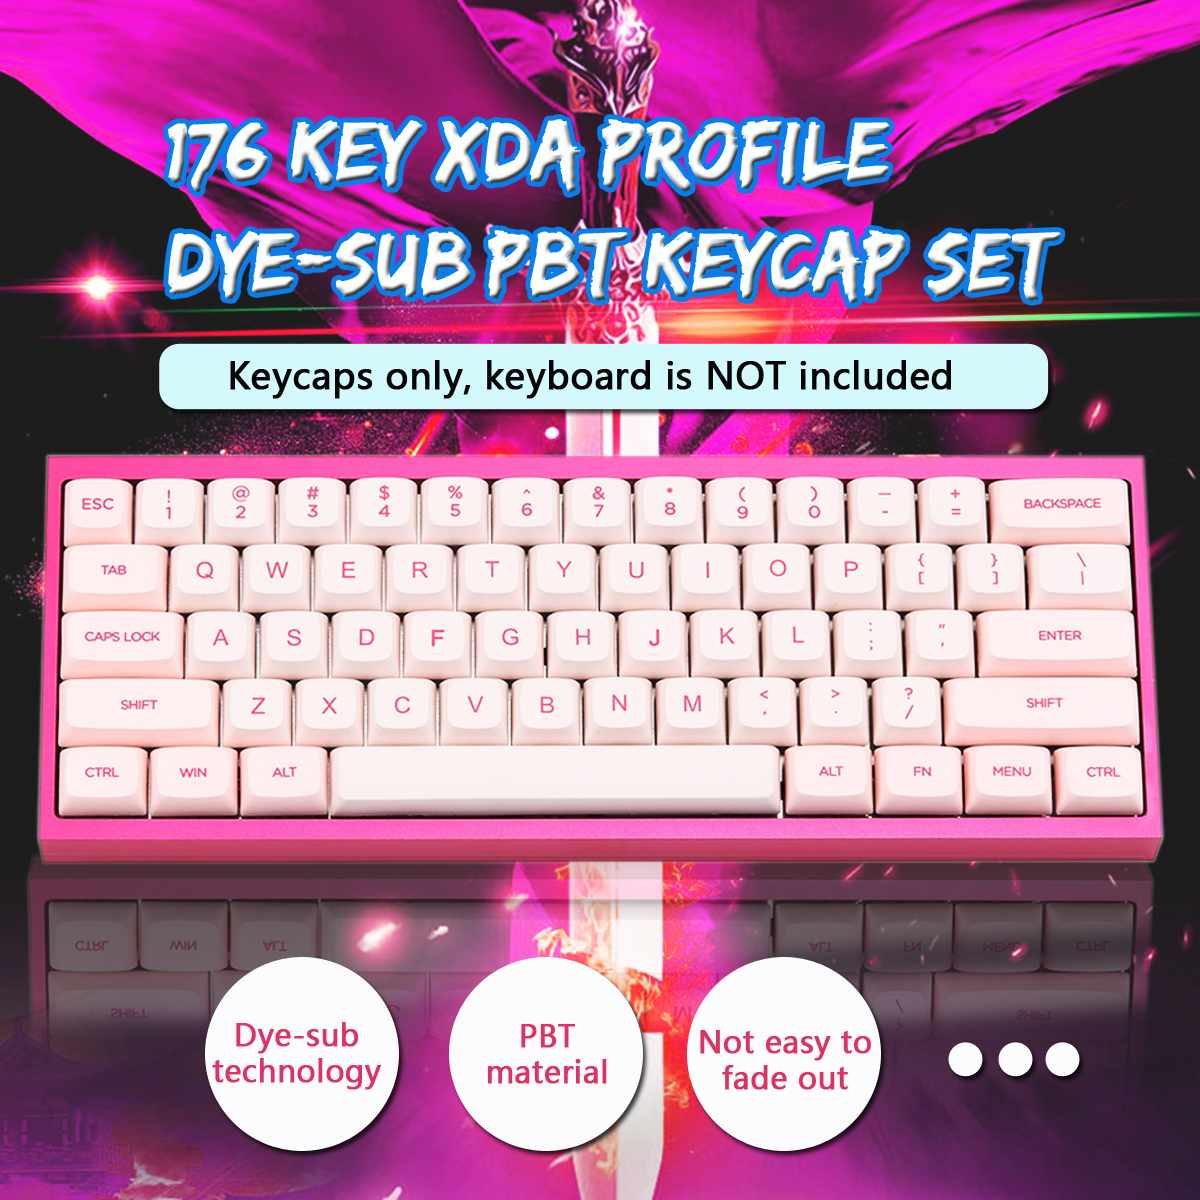 Gaming Keyboard Keycap Pink 176 Key Xda Profile Dye-sub Pbt Keycaps Full Layout Keycap Set Cute Keycaps